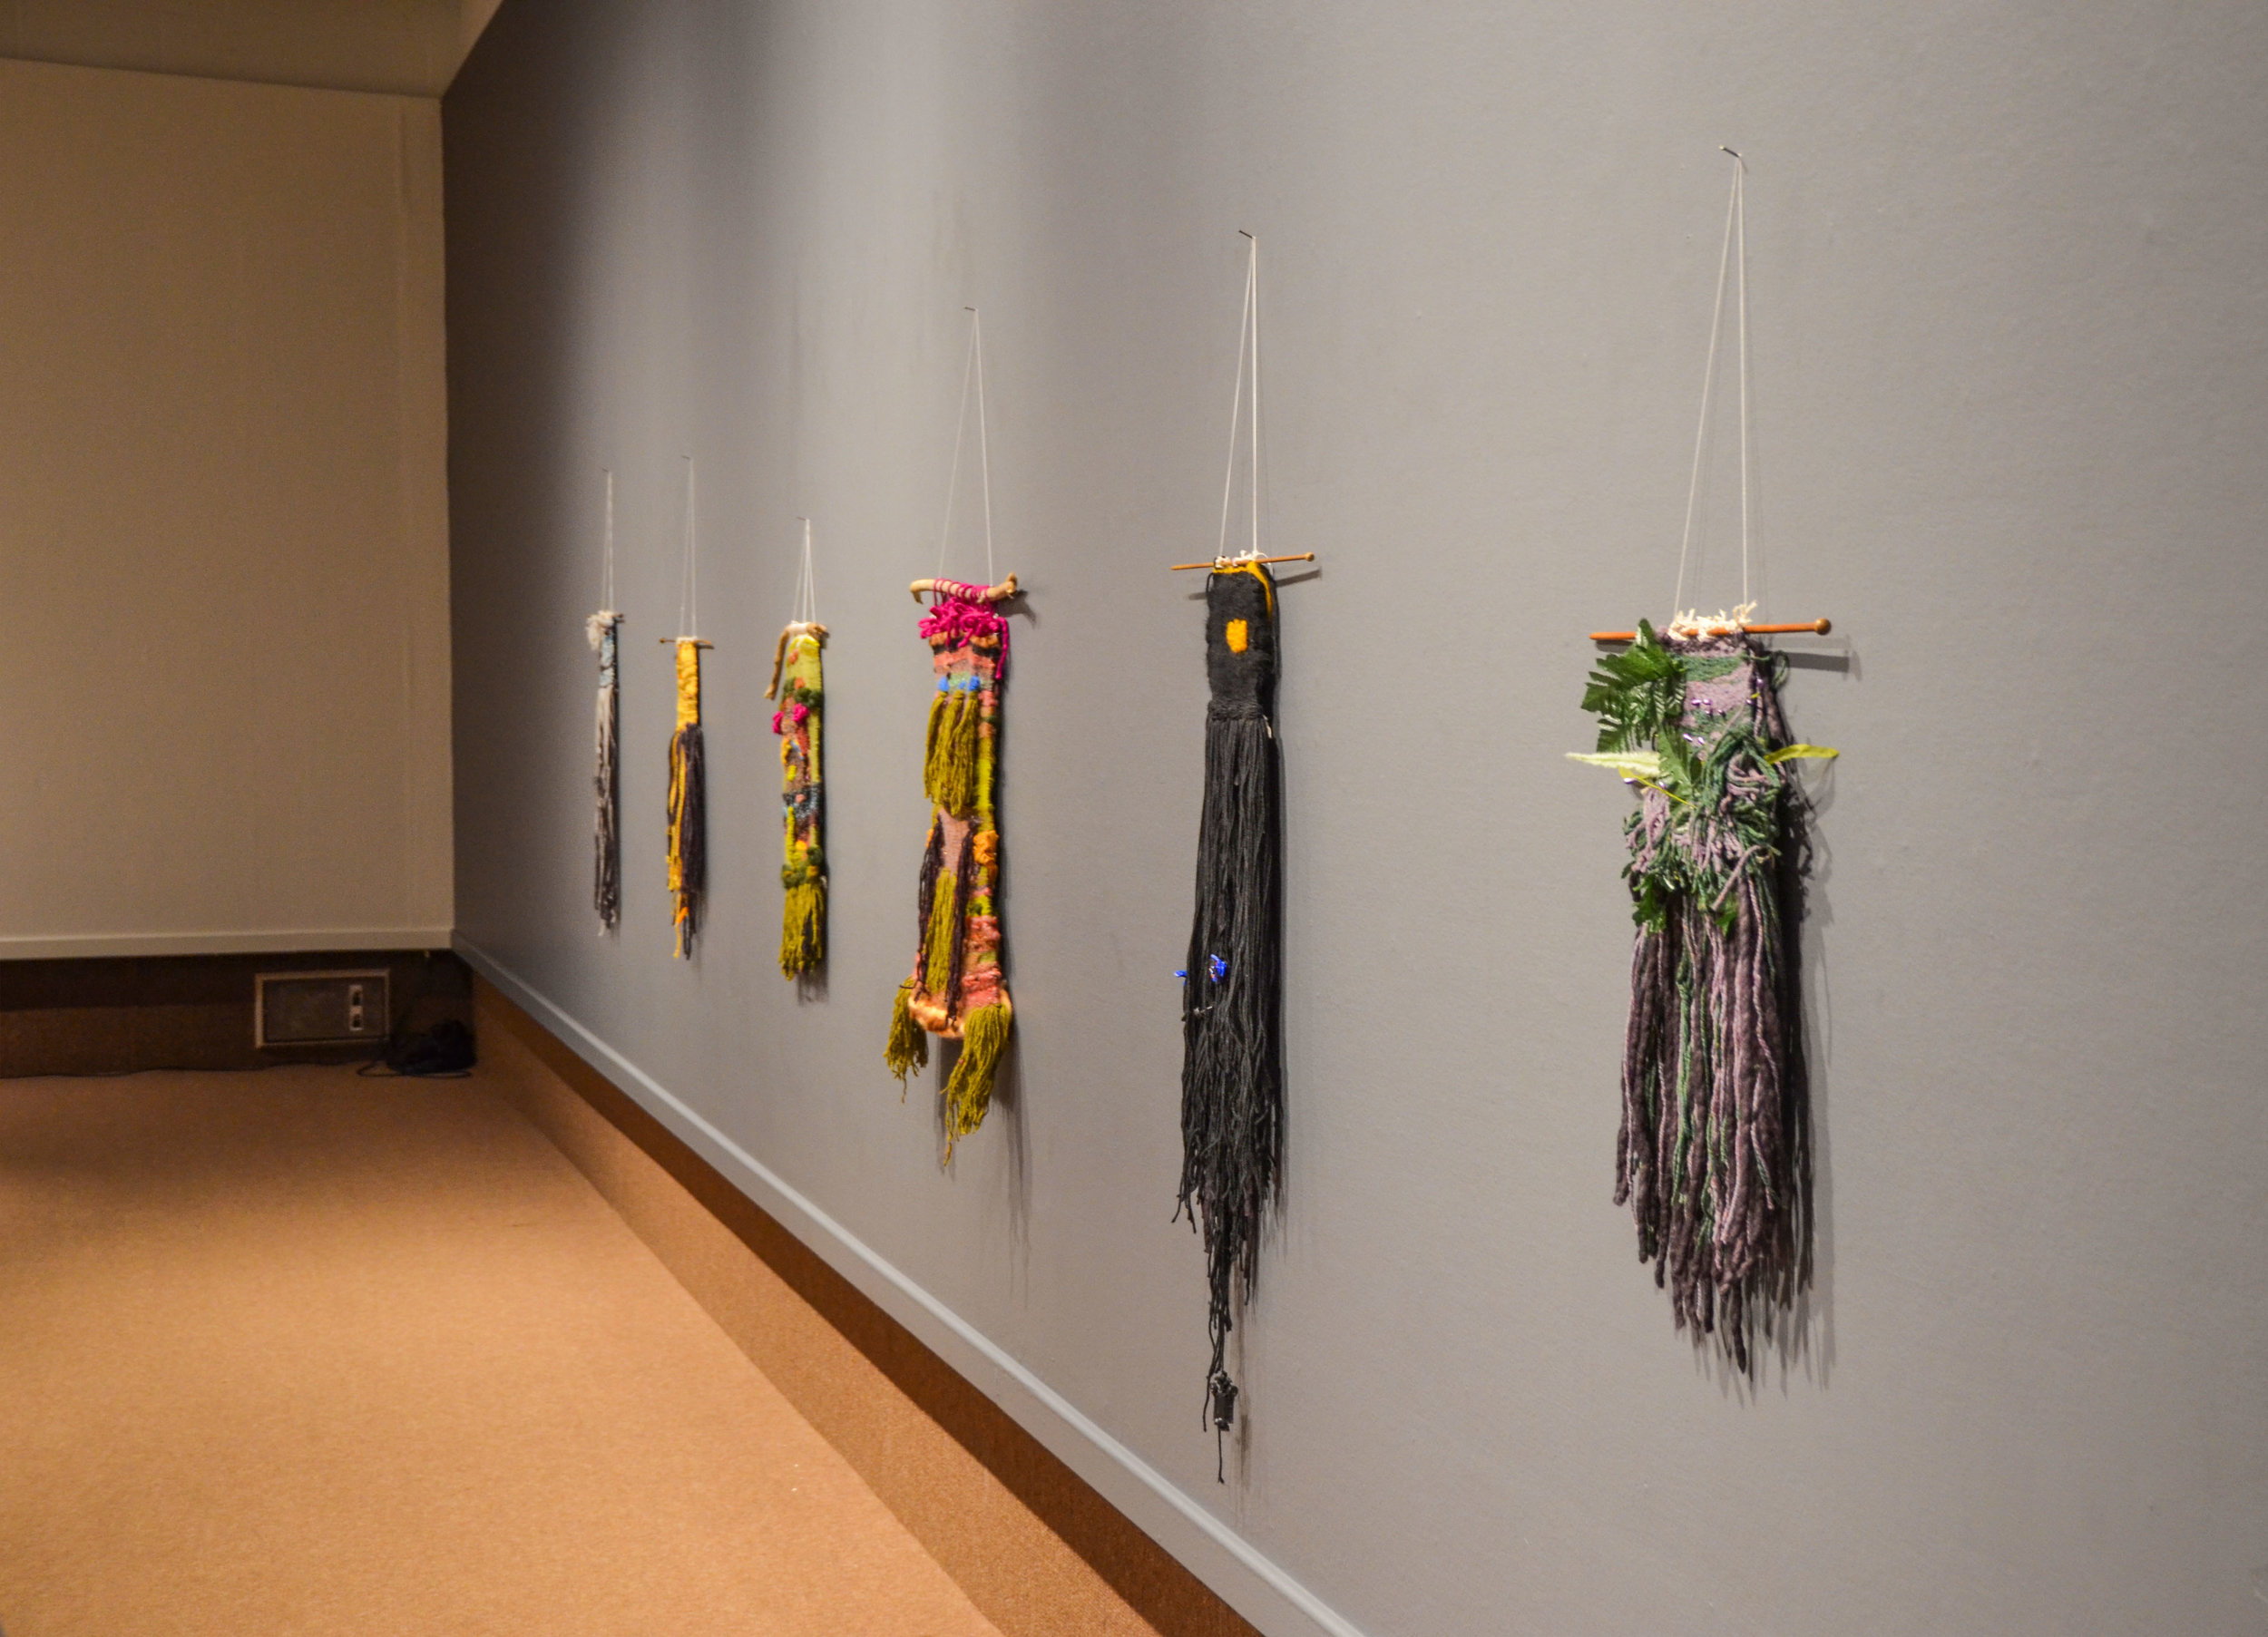 L - R: Audre Lorde, June Jordan, Self Portrait #1 (present), Self Portrait #2 (as ancestor) Jean-Michel Basquiat, Octavia Butler.   Image Description: six woven tapestries hang on a dark grey wall above a sable coloured carpet.